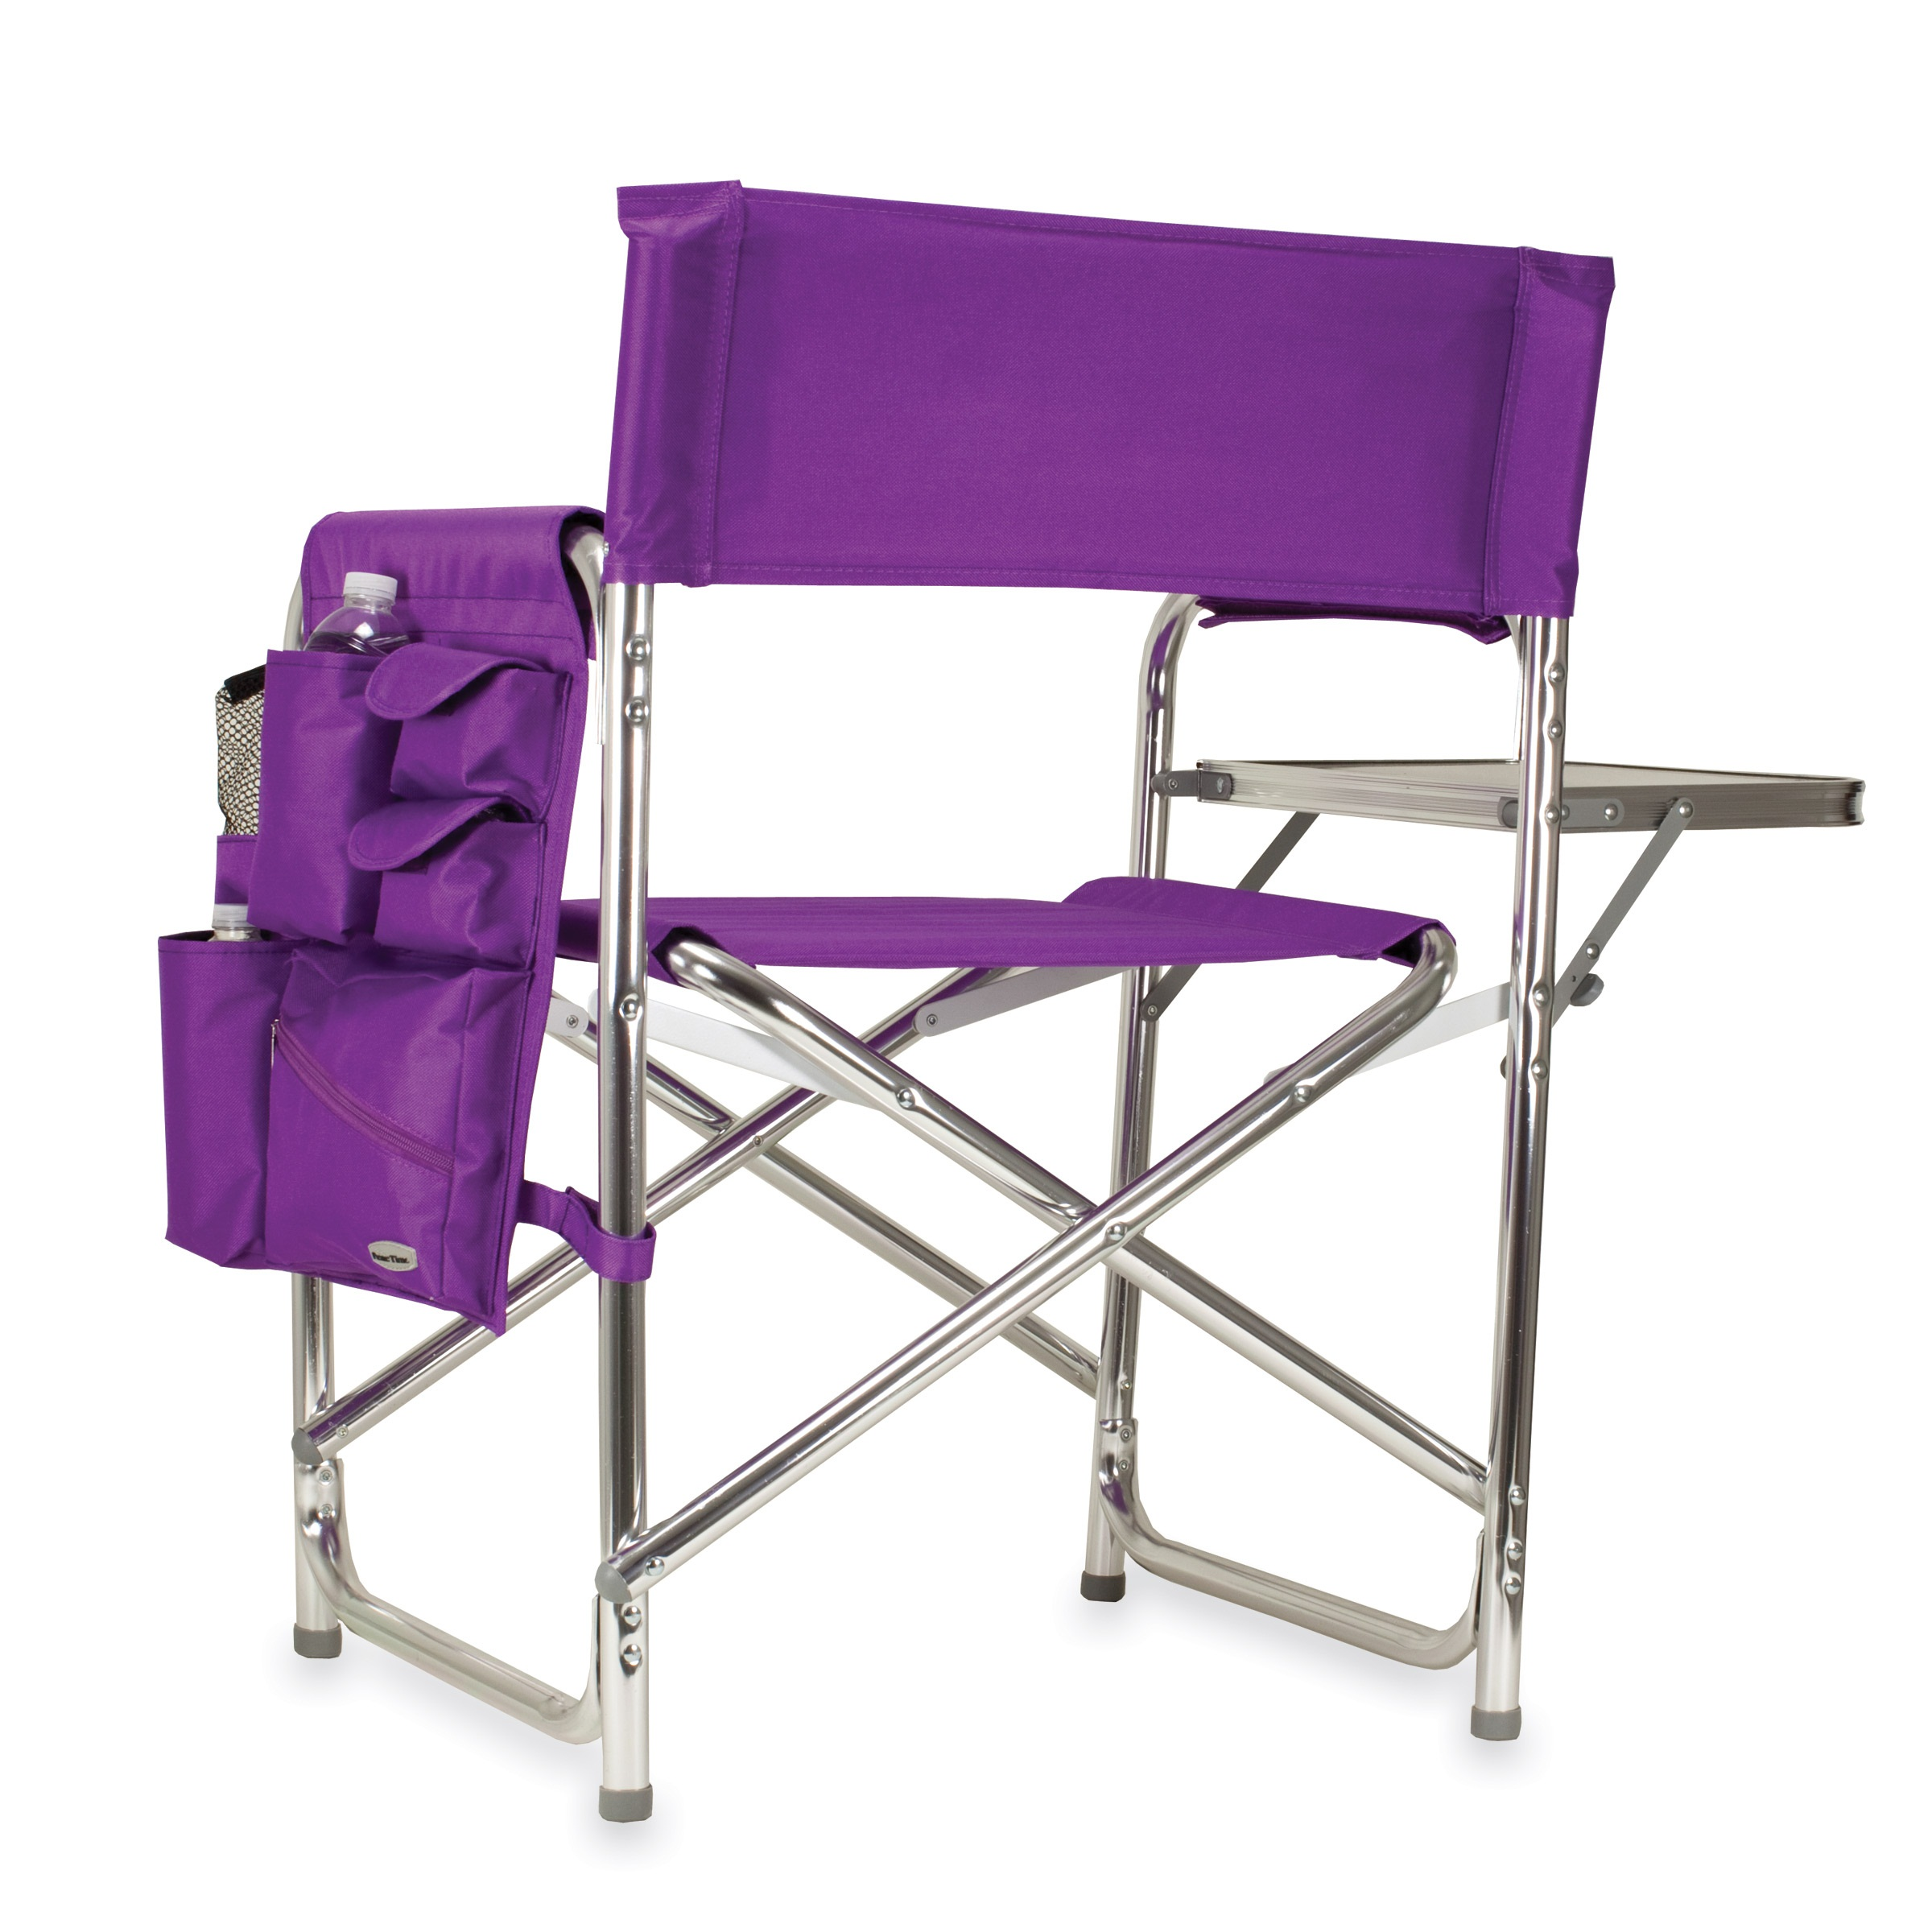 Picnic Time Purple Portable Folding SportsCamping Chair